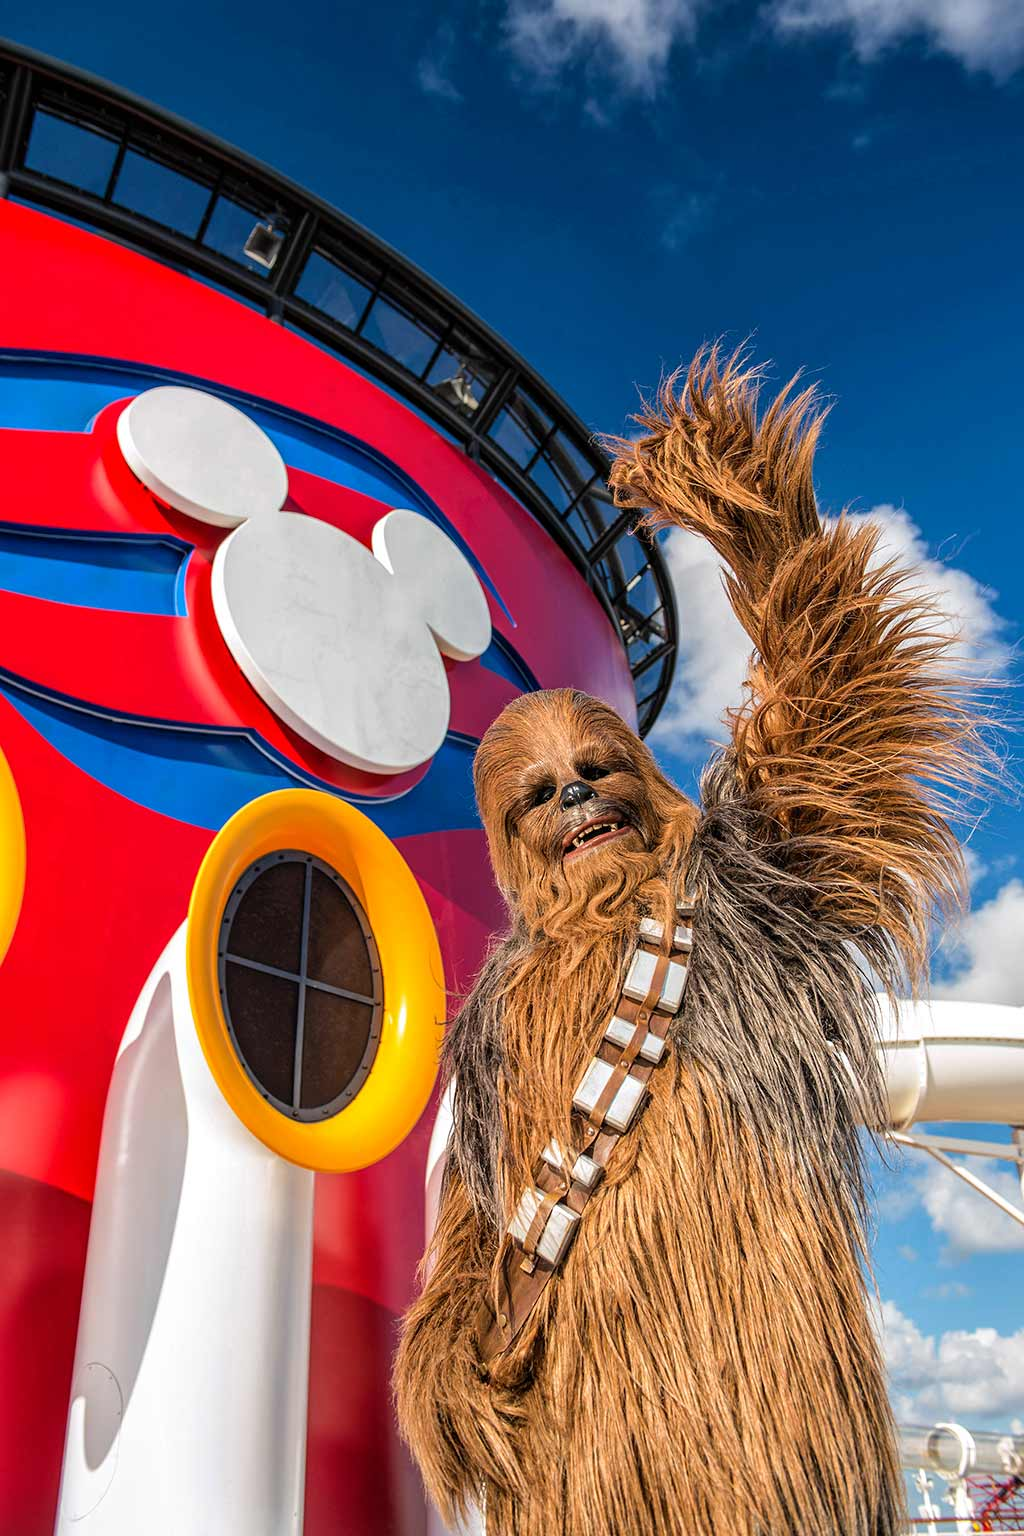 Chewbacca on Disney Cruise Ship